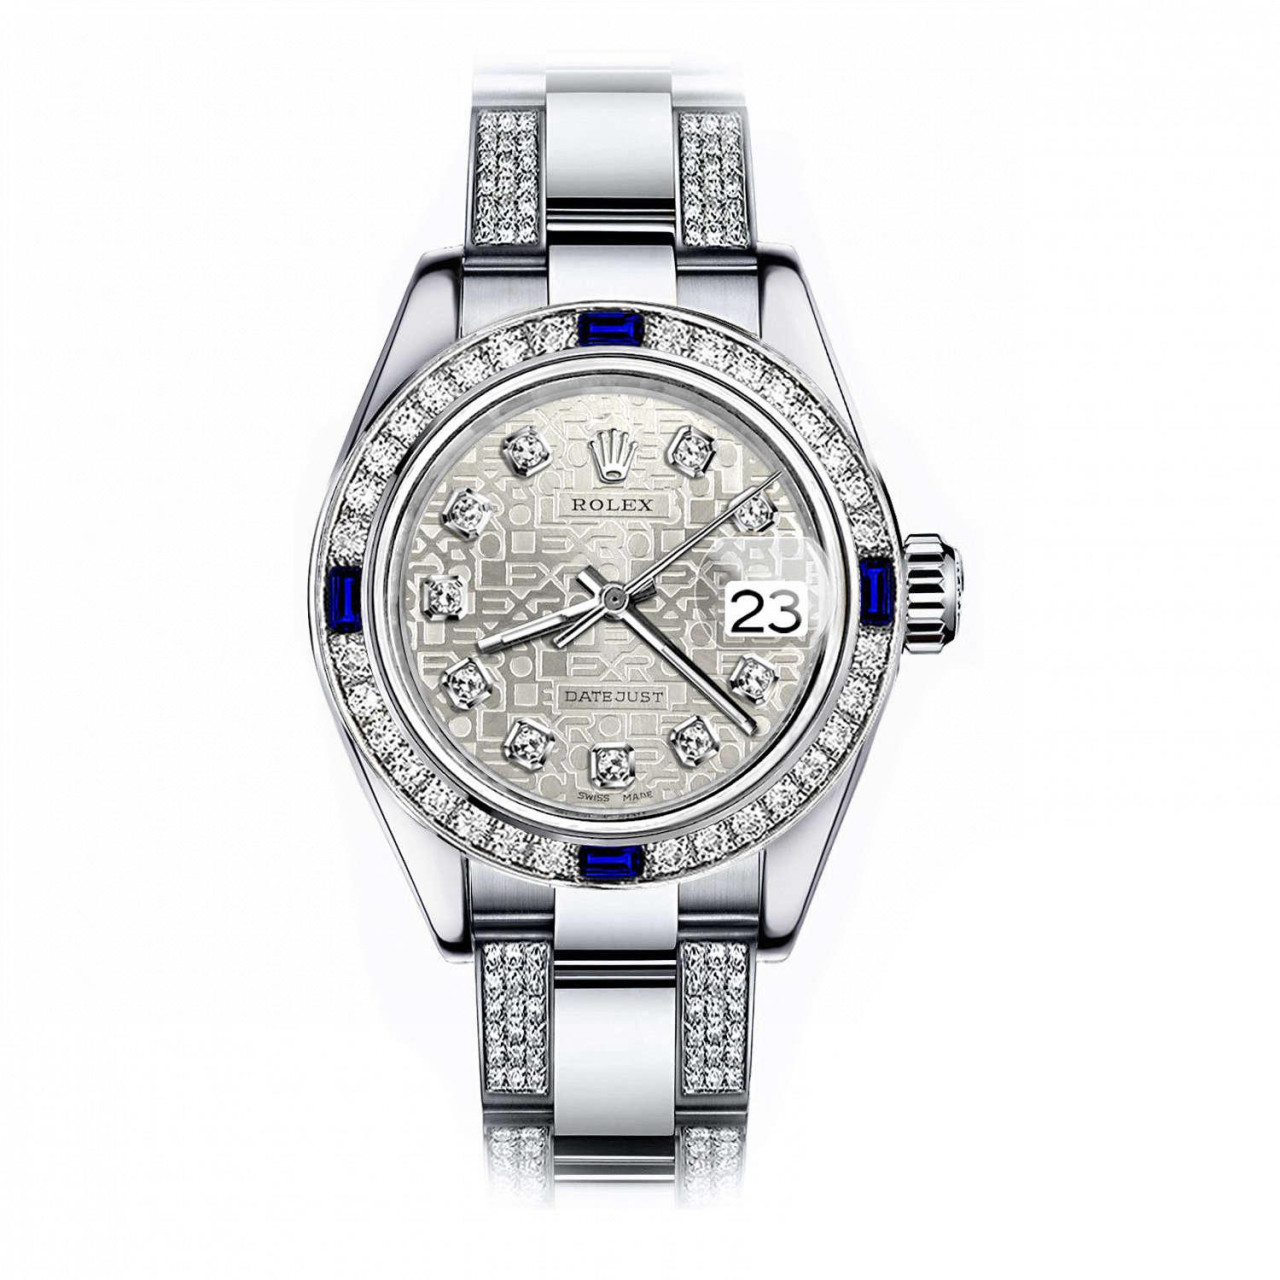 Women\u0027s Customized Rolex watch 31mm Datejust Stainless Steel Diamond Dial  with Silver Jubilee Metal Plate